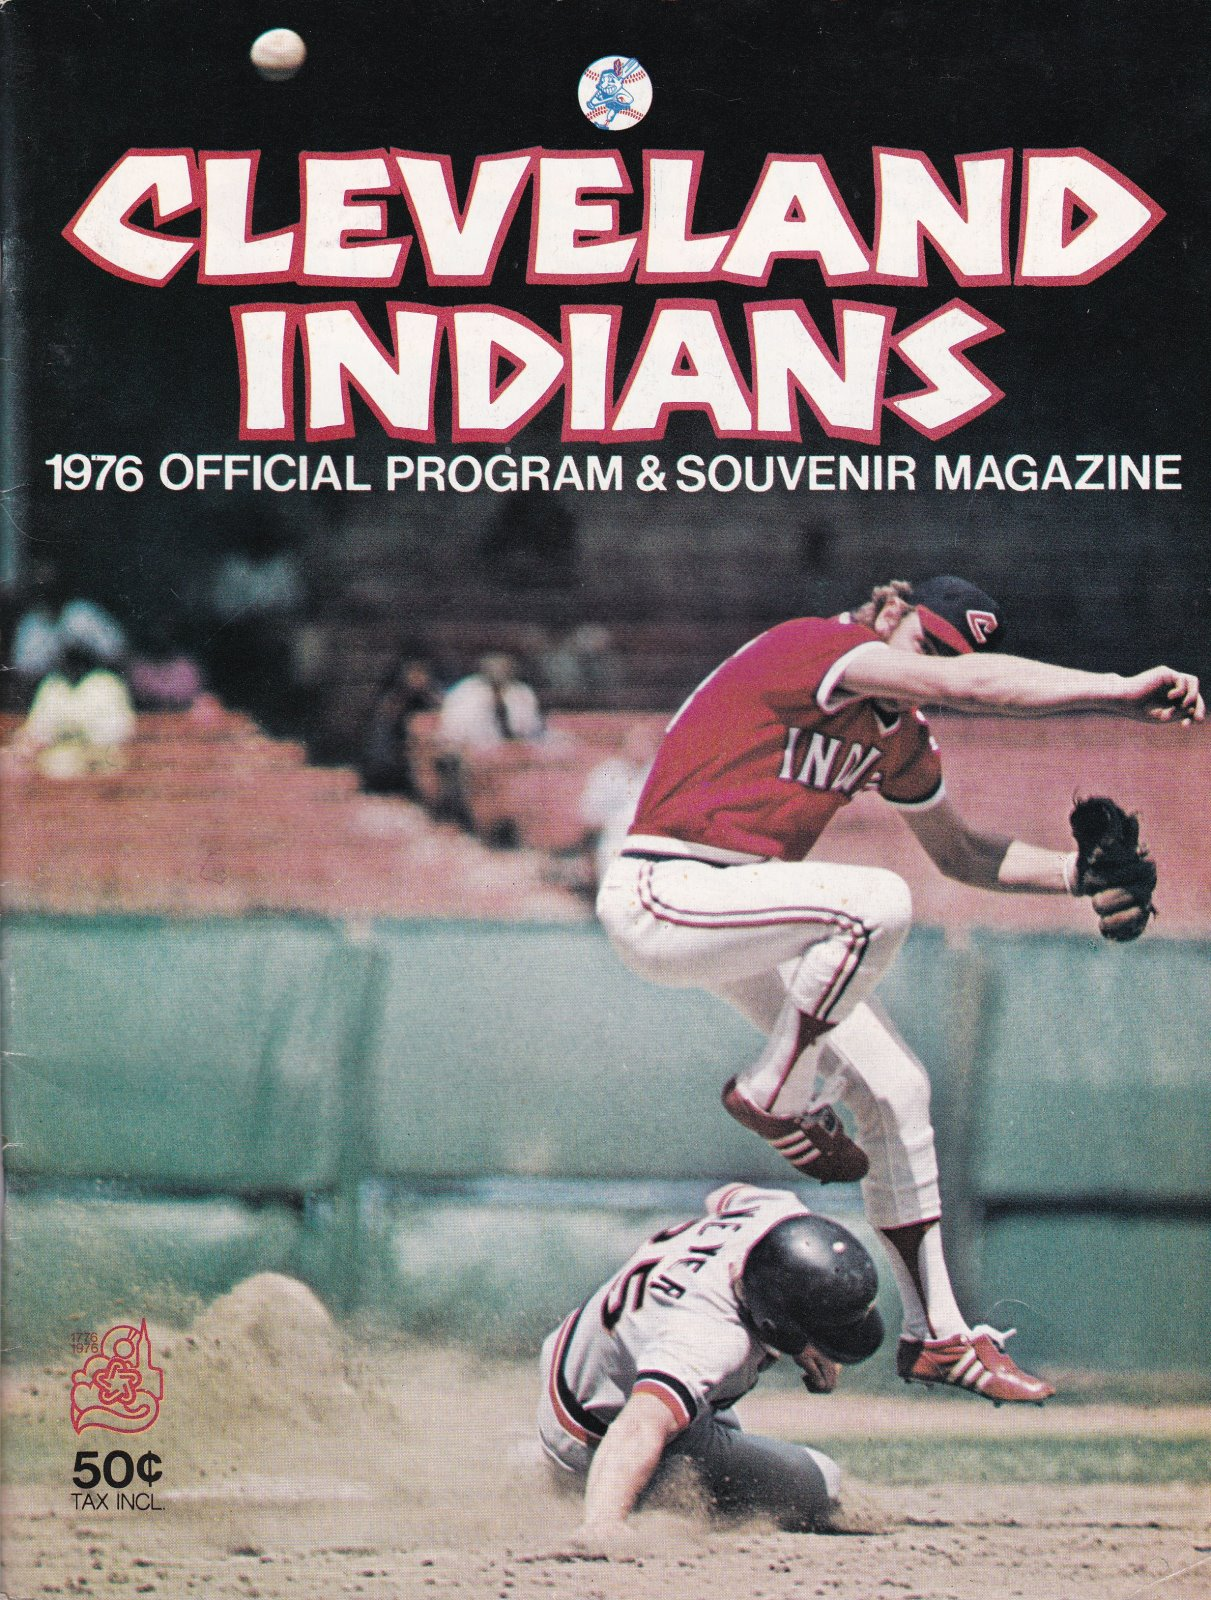 Cleveland Indians 1976 Official Program & Souvenir Magazine